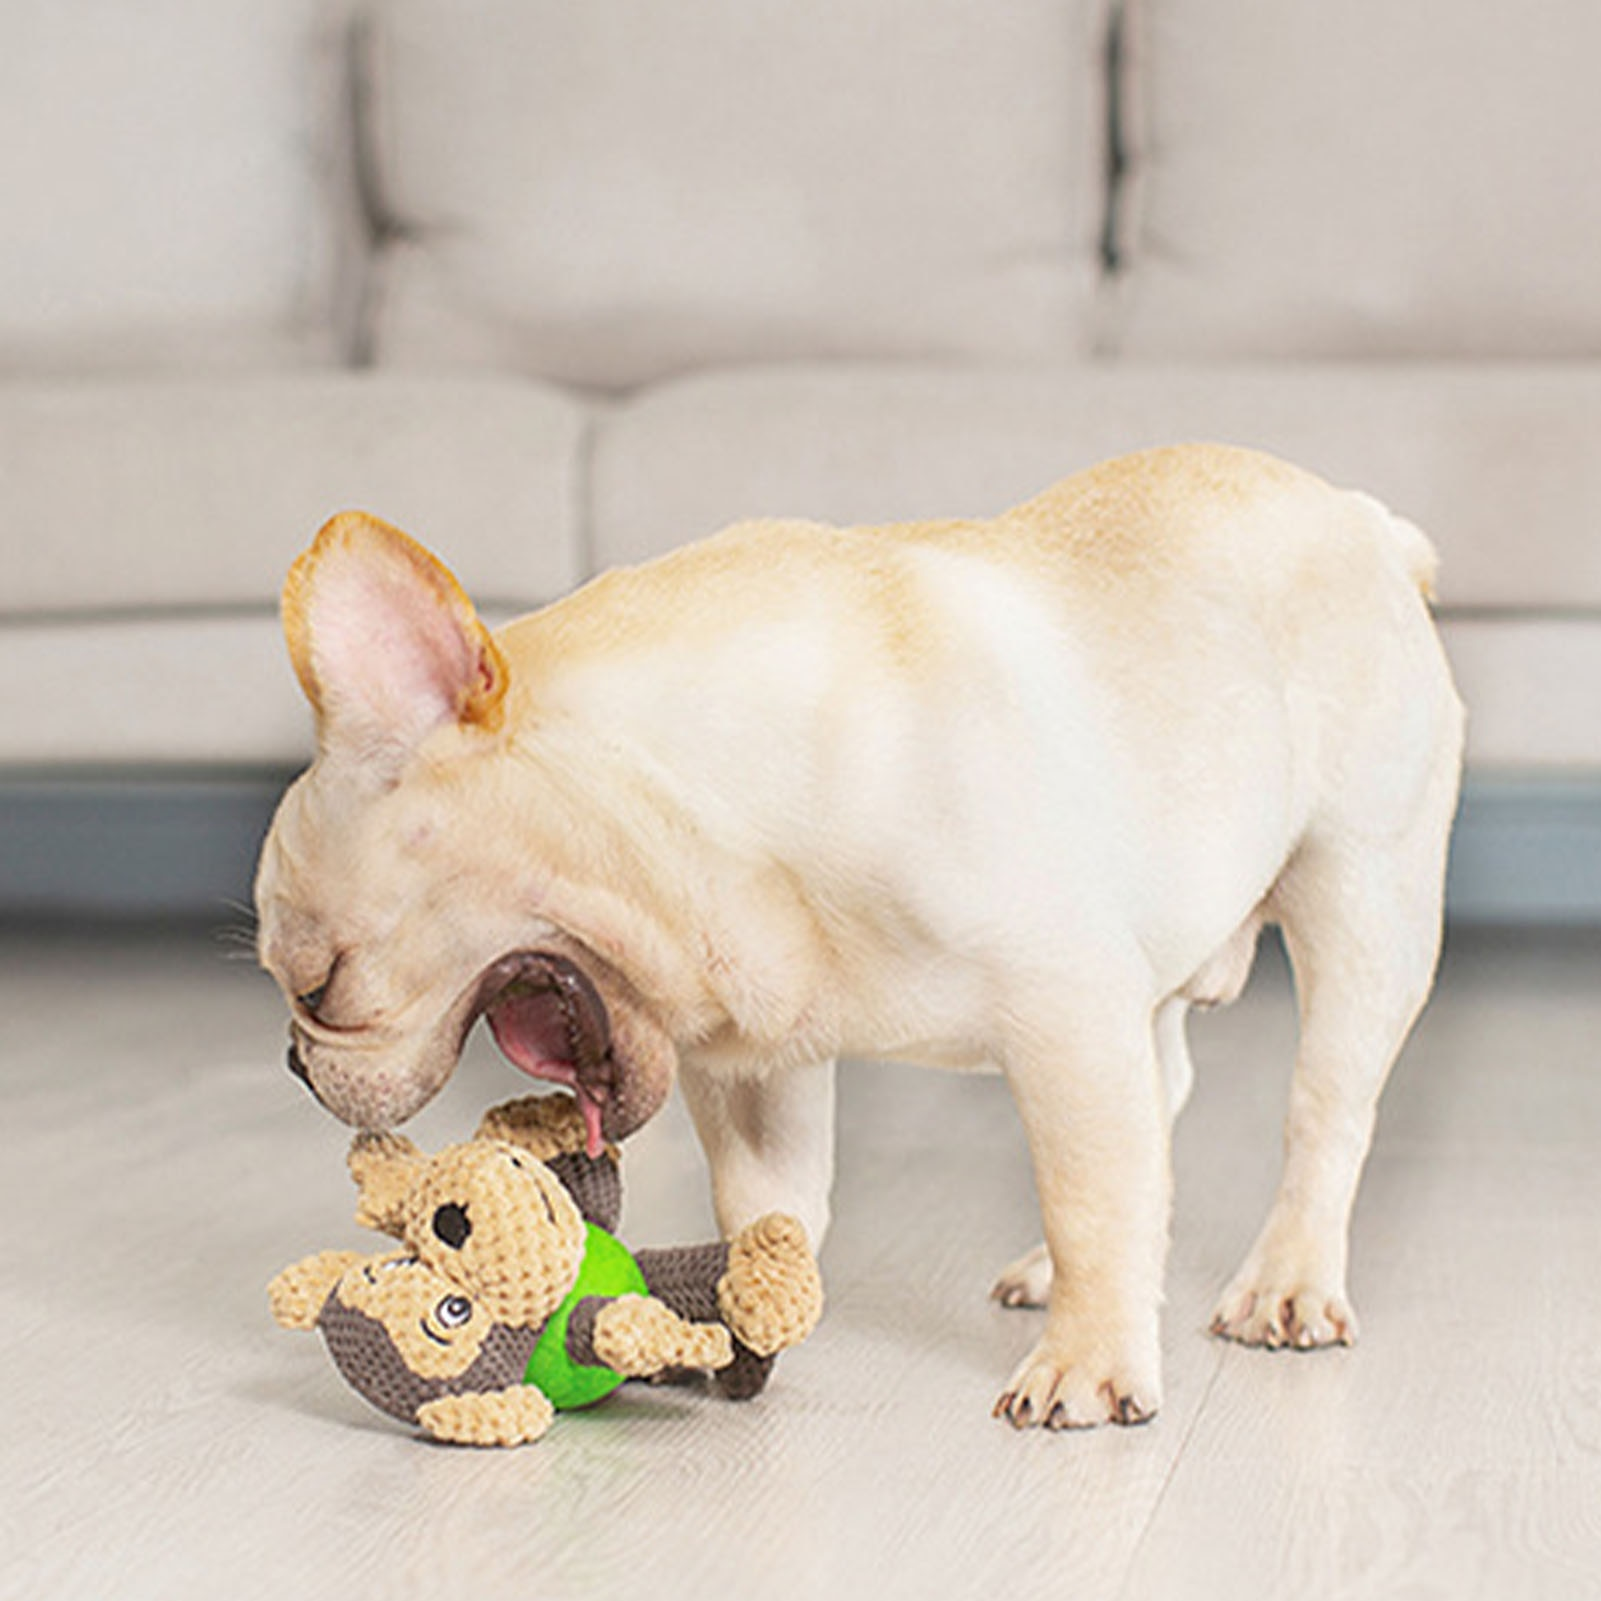 Squeaky Plush Dog Toy Bite Resistant Puppy Molar Toy Stuffed Doll Droshipping  - buy with discount